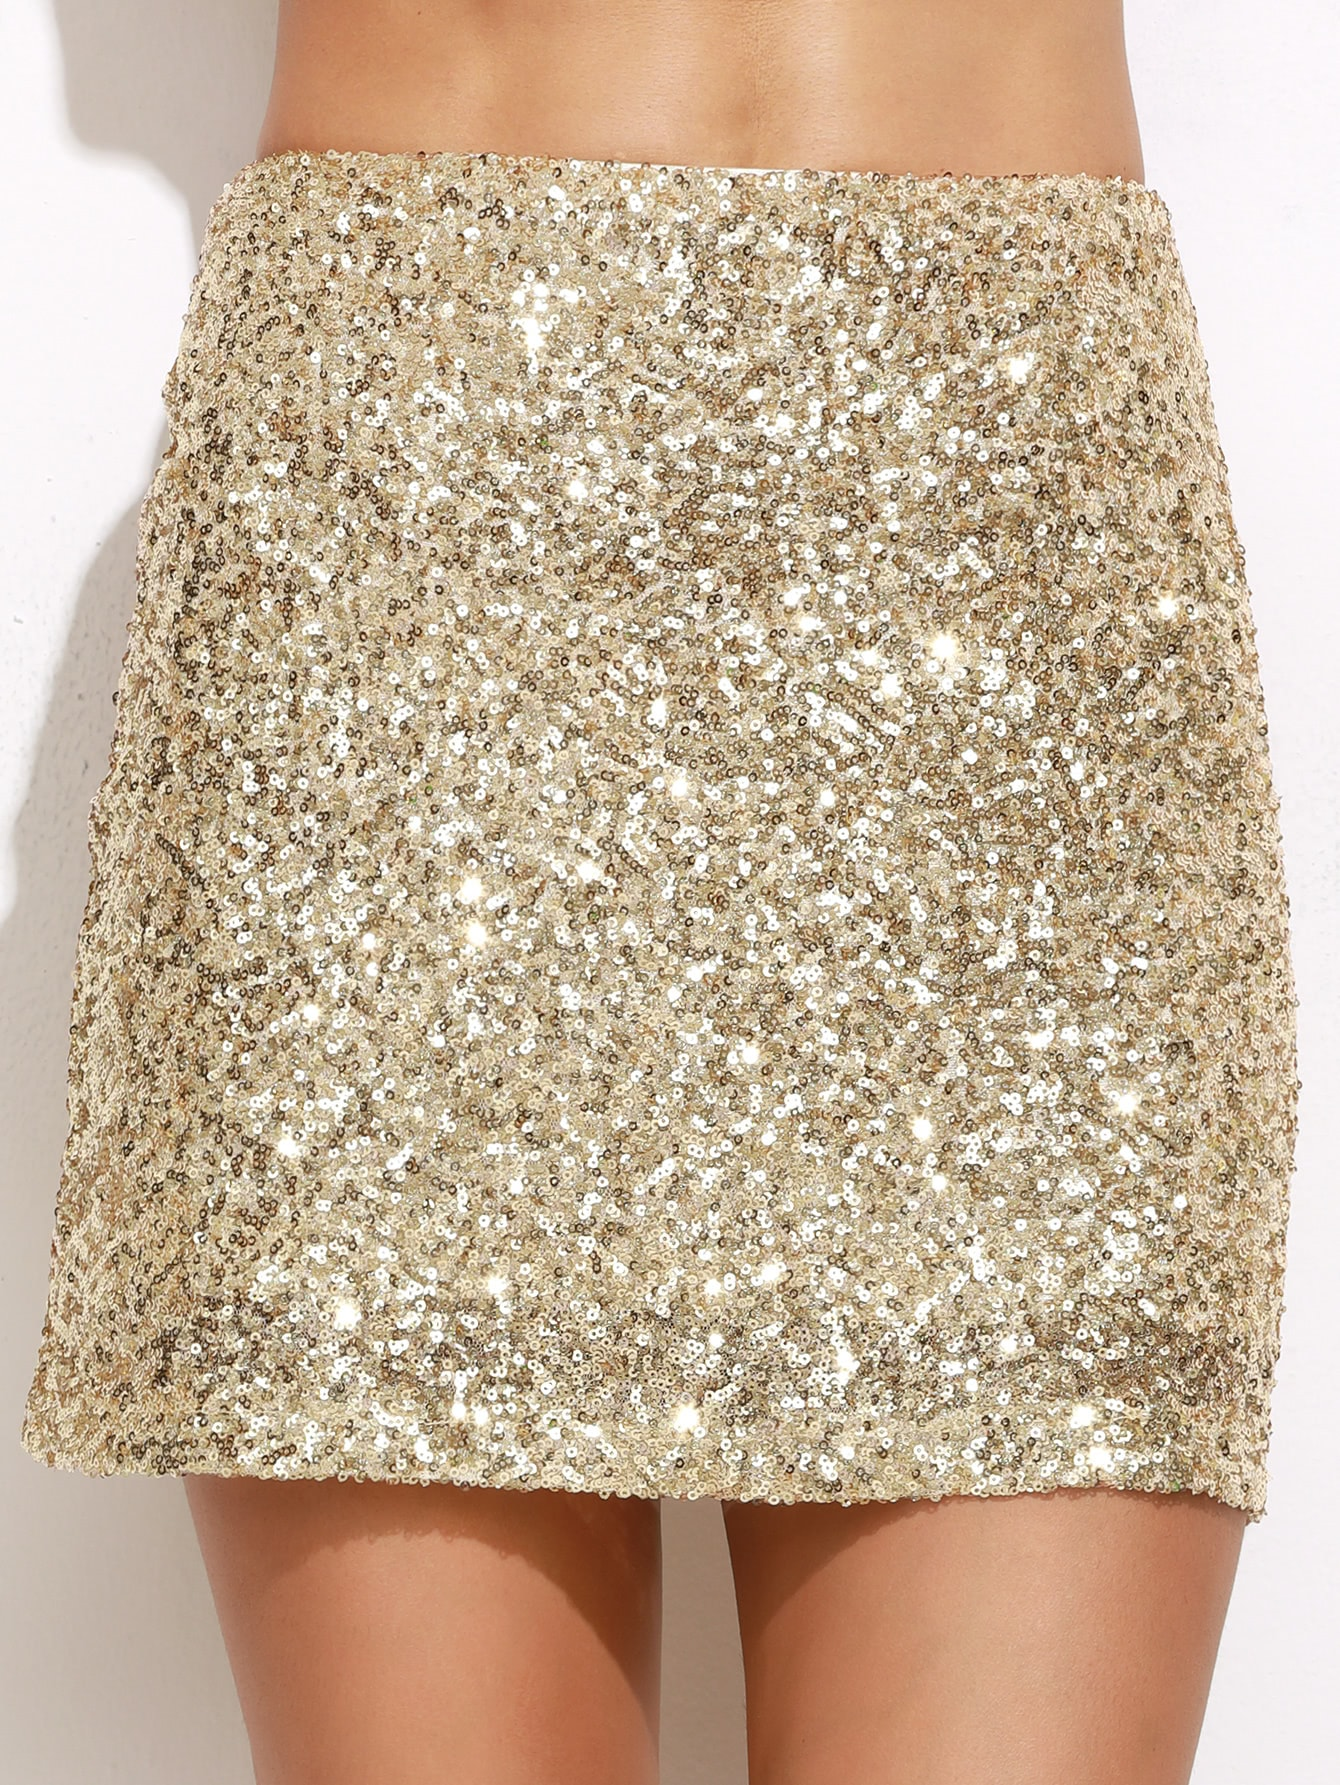 Embroidered Sequin Mini Skirt -SheIn(Sheinside)